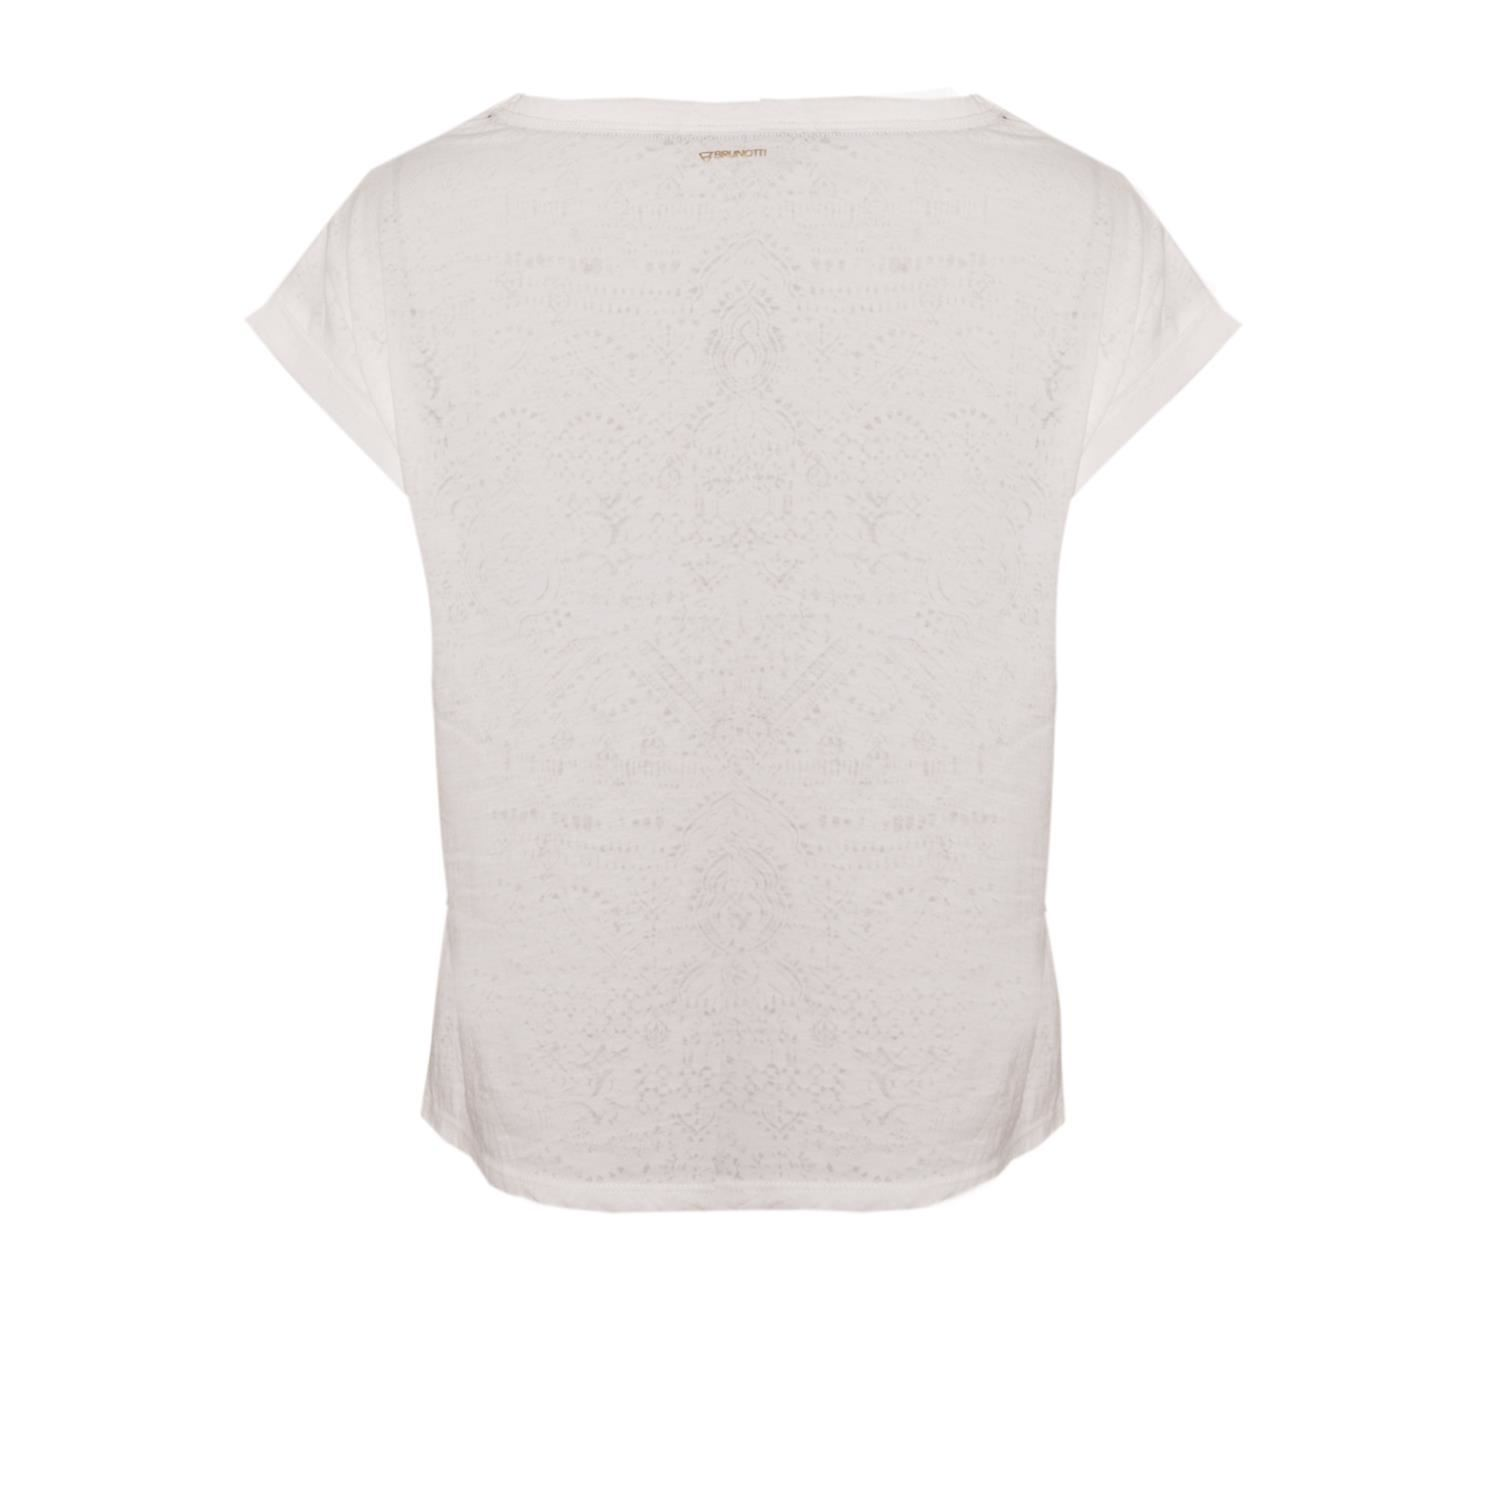 93ecc234873 Brunotti Palo (white) - women t-shirts   tops - Brunotti online shop. Tap to  expand. Sale. Thumb 1 Thumb 2